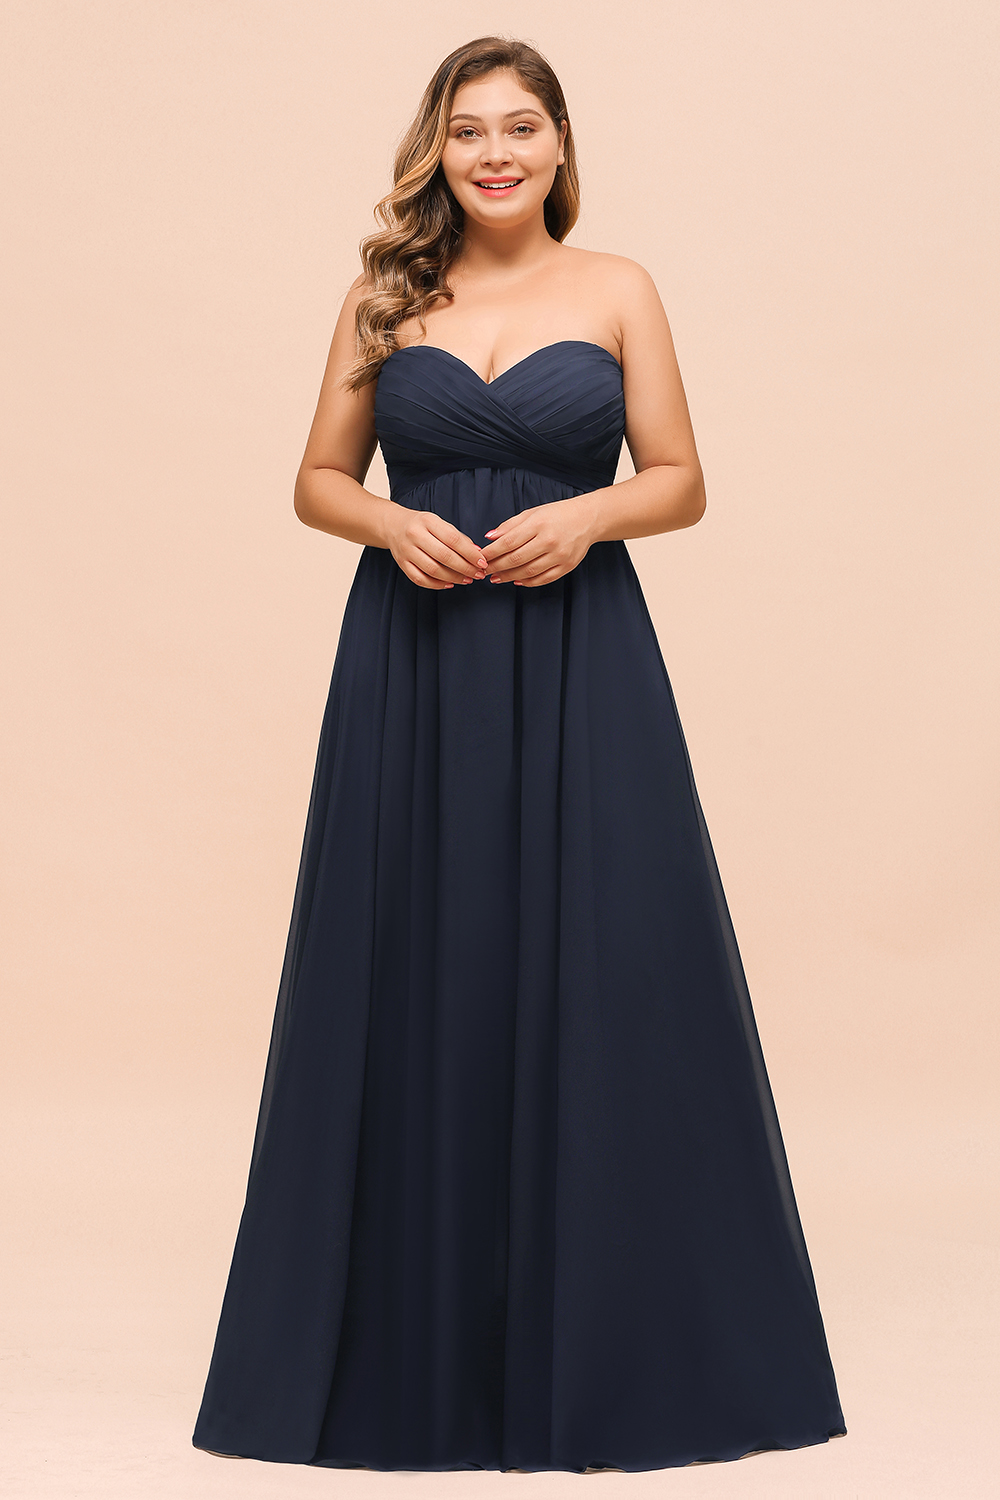 BMbridal Affordable Strapless Sweetheart Long Bridesmaid Dress with Ruffle